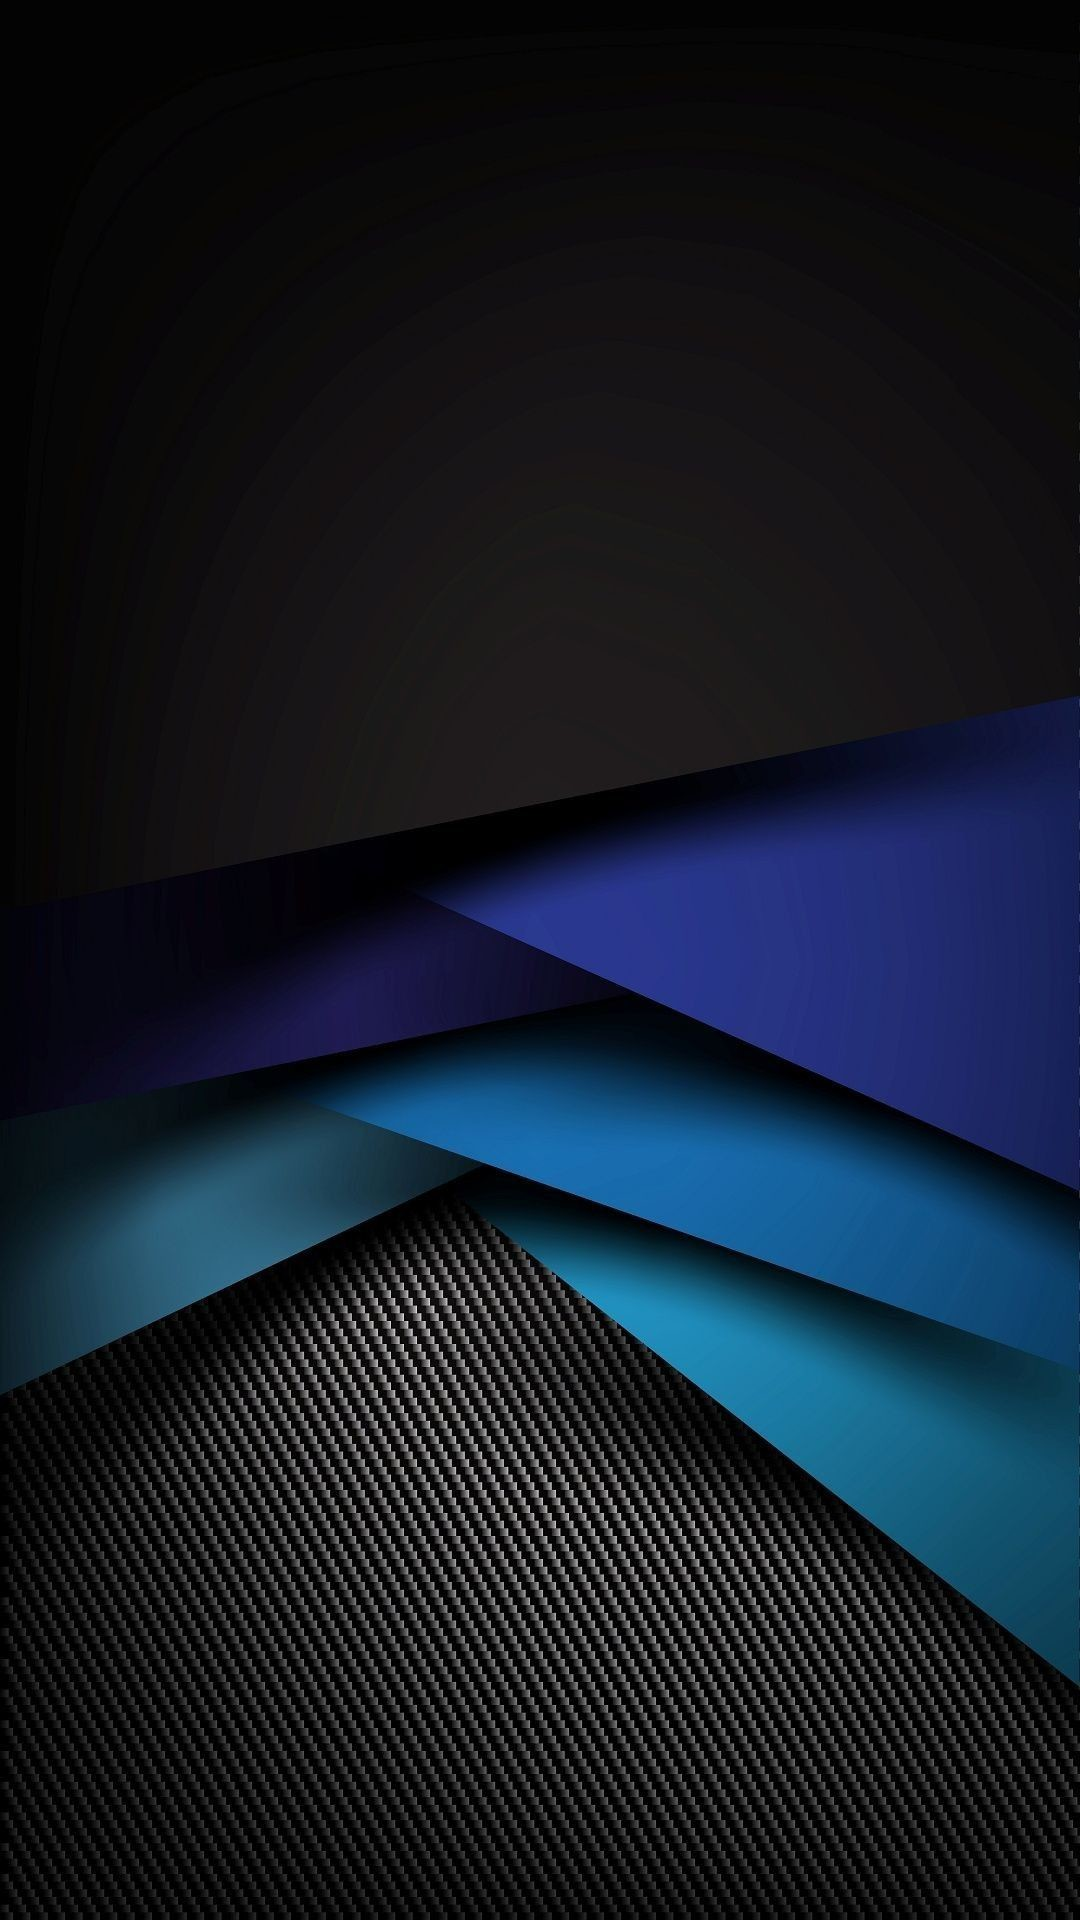 Res: 1080x1920, Black and Blue Geometric Abstract Wallpaper